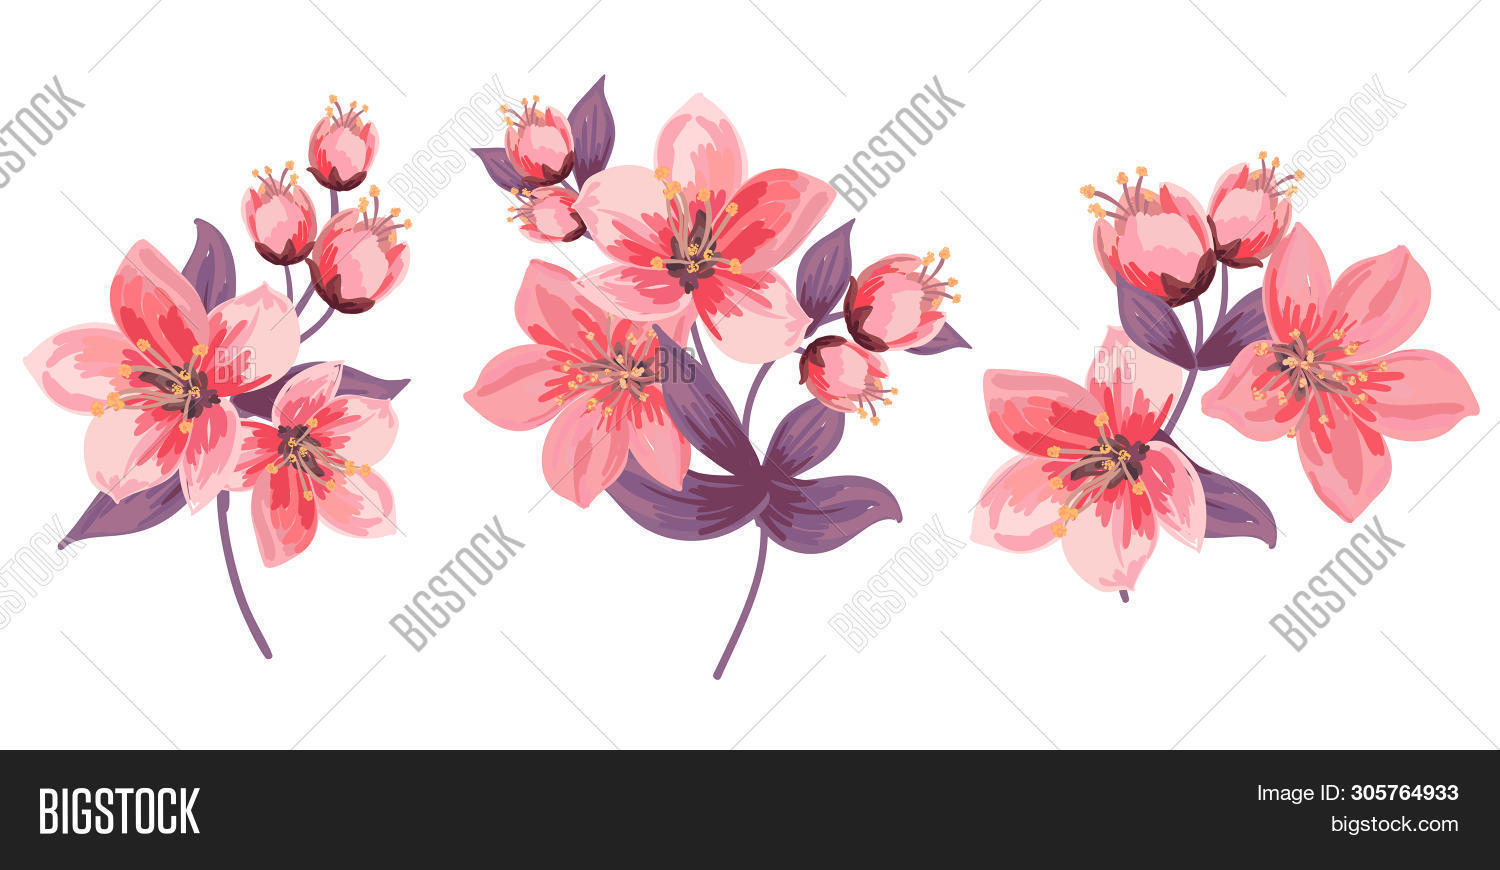 Set Floral Backgrounds Image Photo Free Trial Bigstock